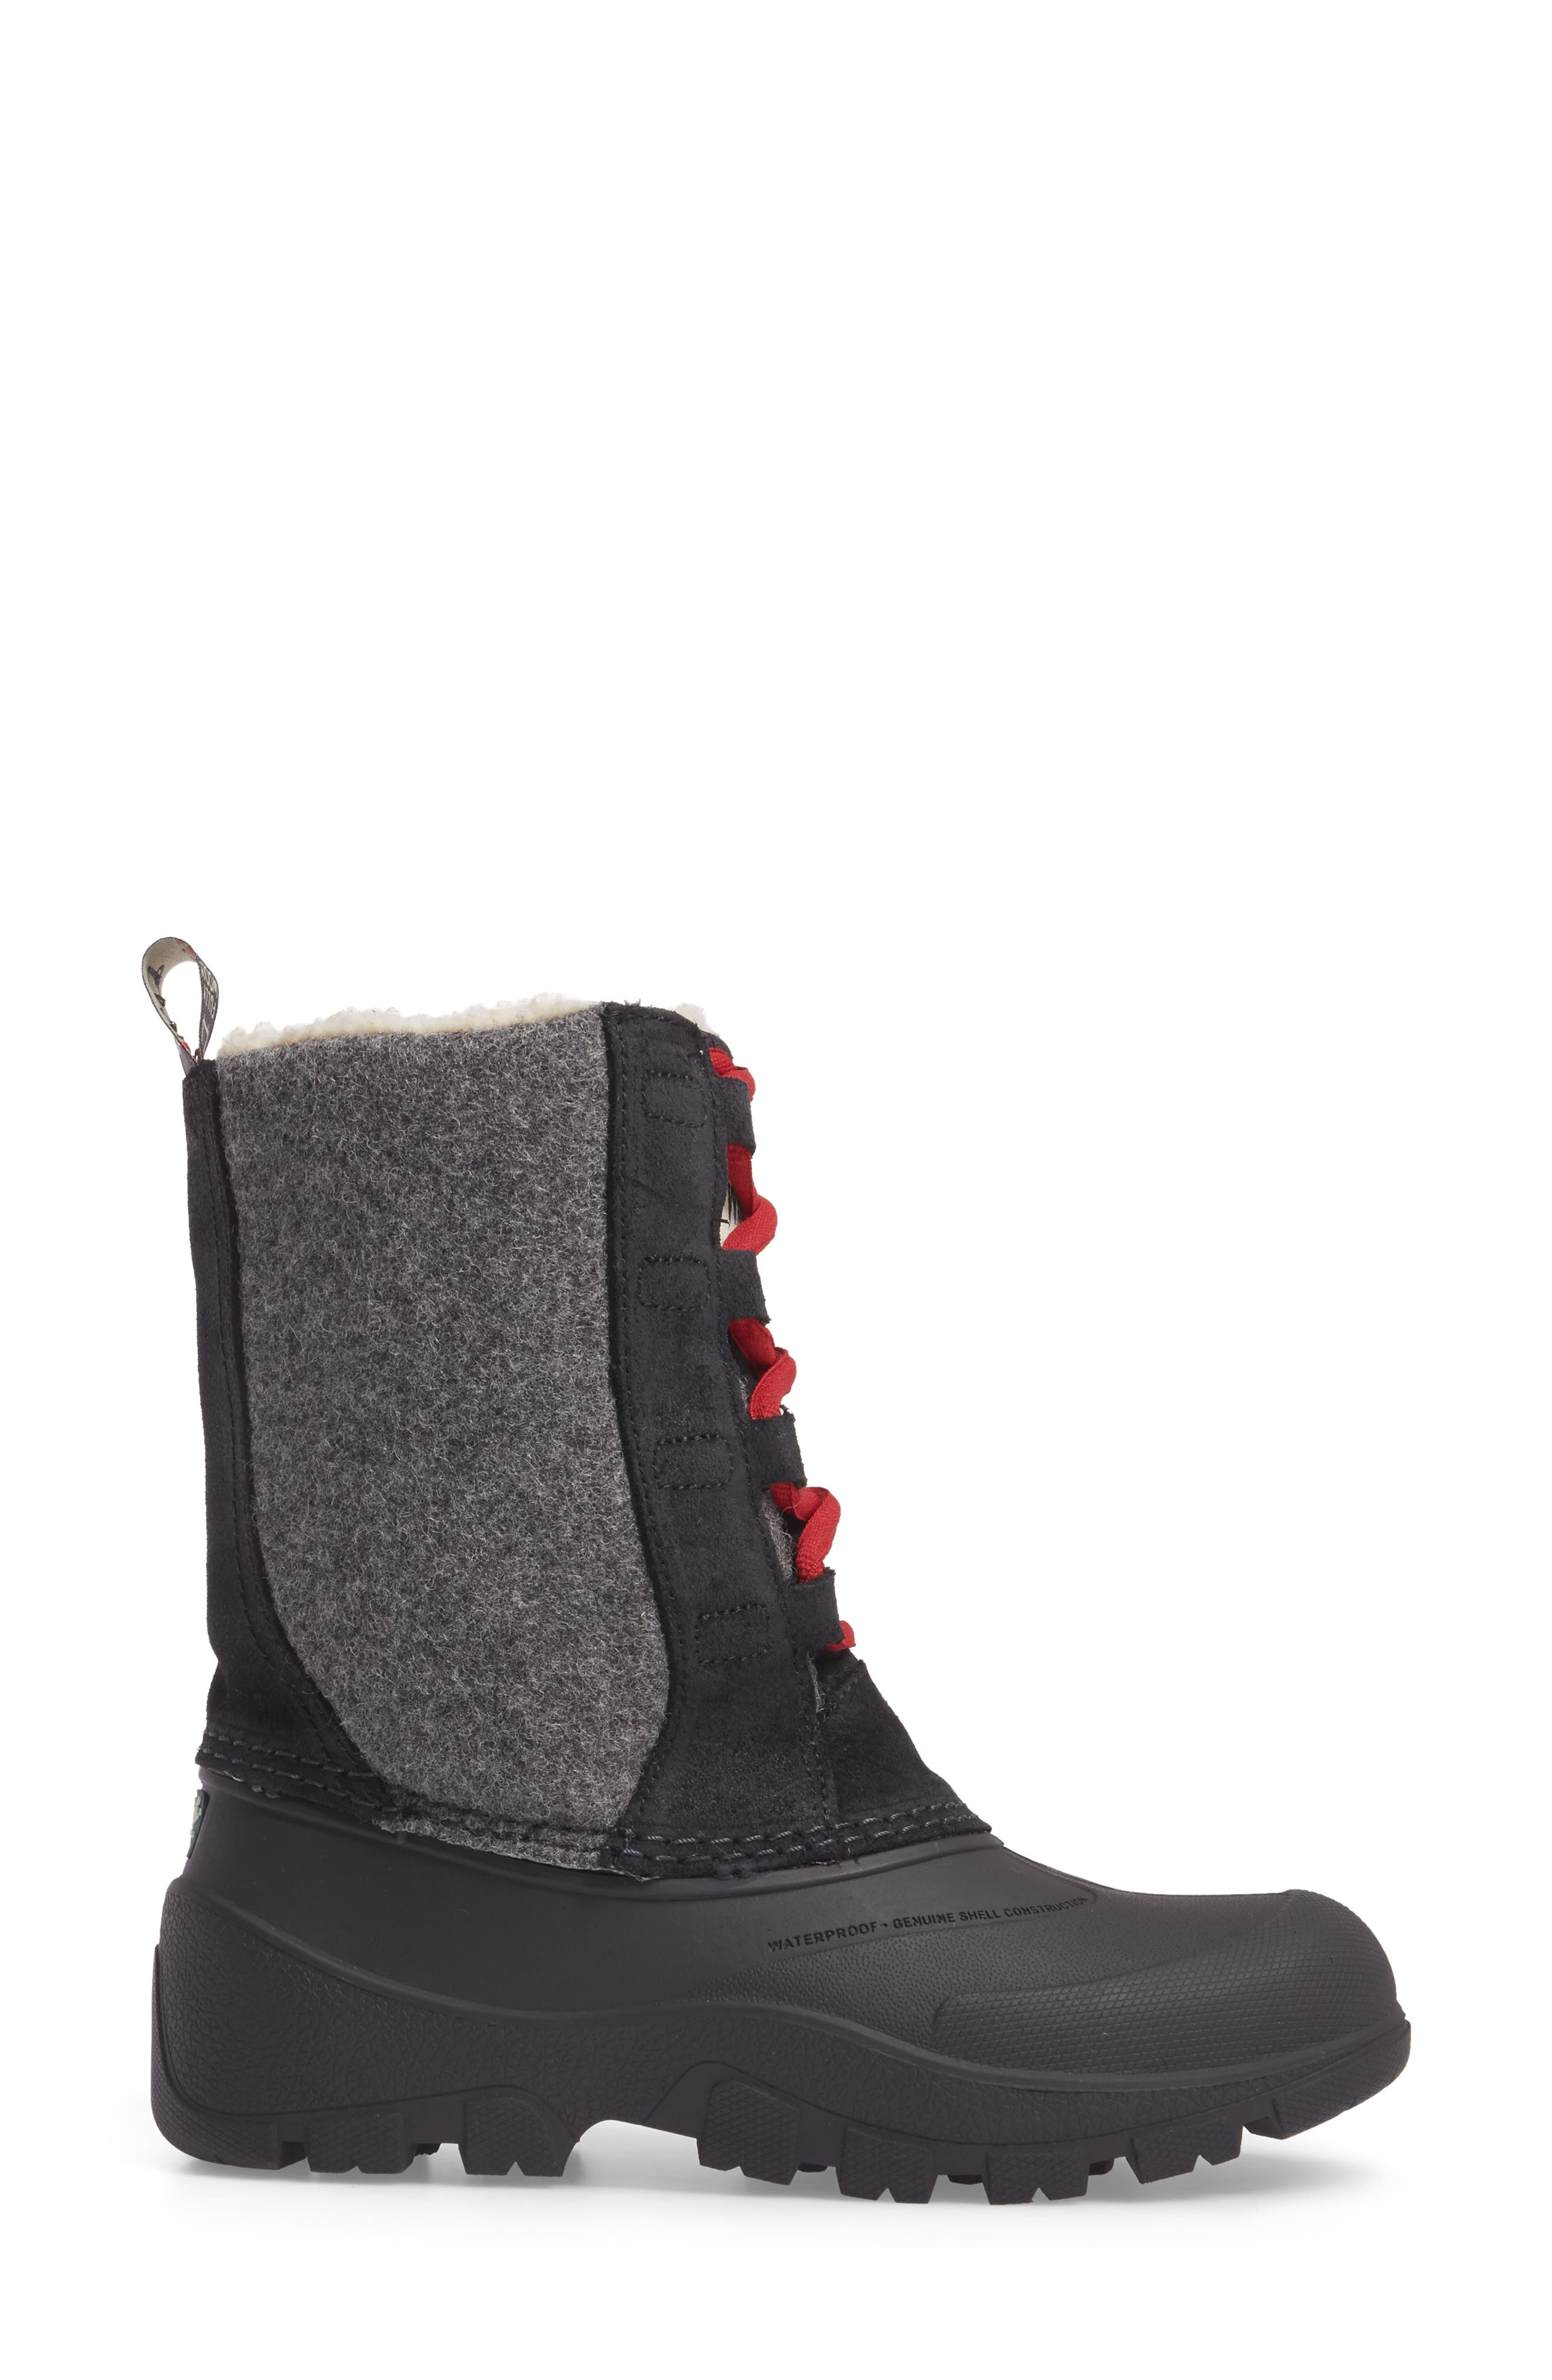 Fully Wooly Tundracat Waterproof Insulated Winter Boot,                             Alternate thumbnail 3, color,                             001